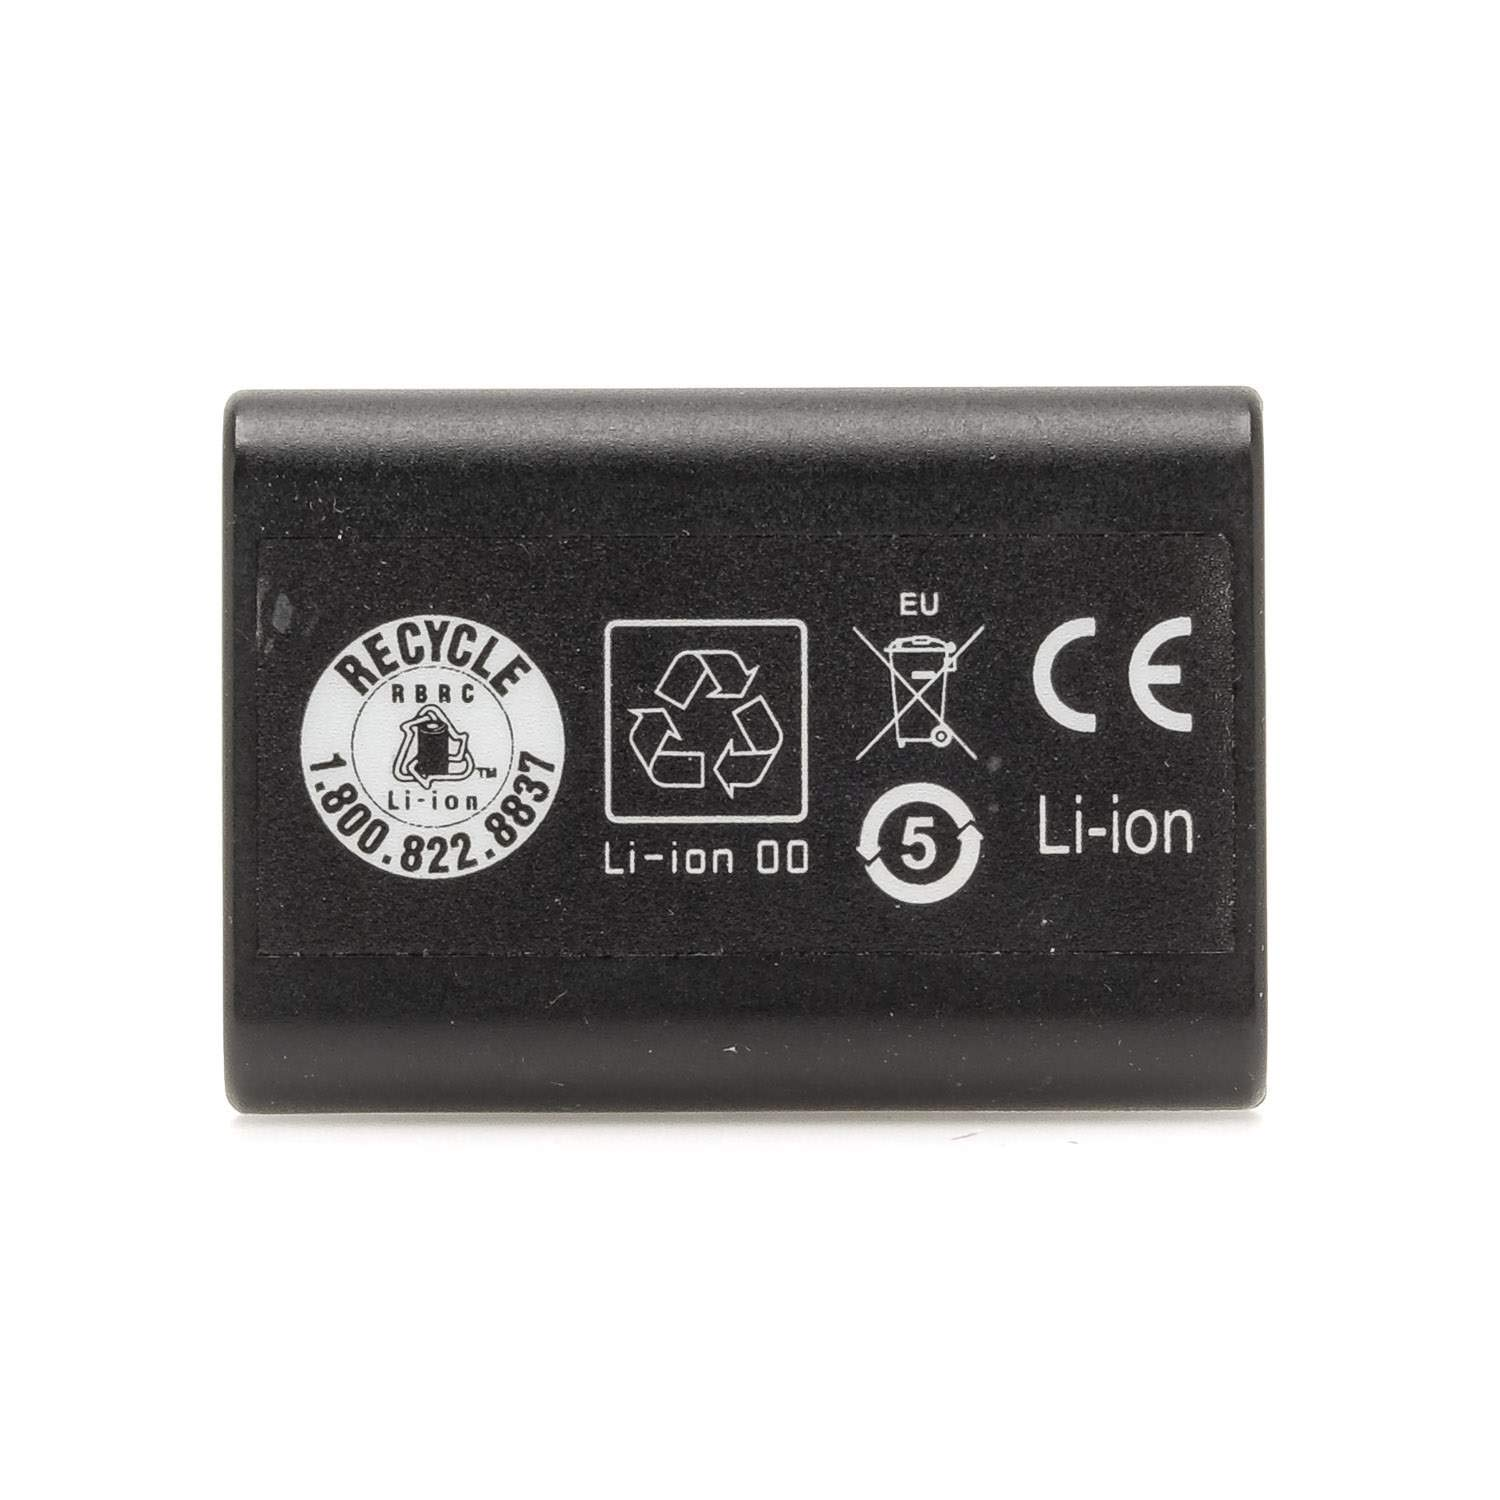 Leica 14464 Lithium-ion Battery for the M8 Digital Rangefinder Camera by Leica